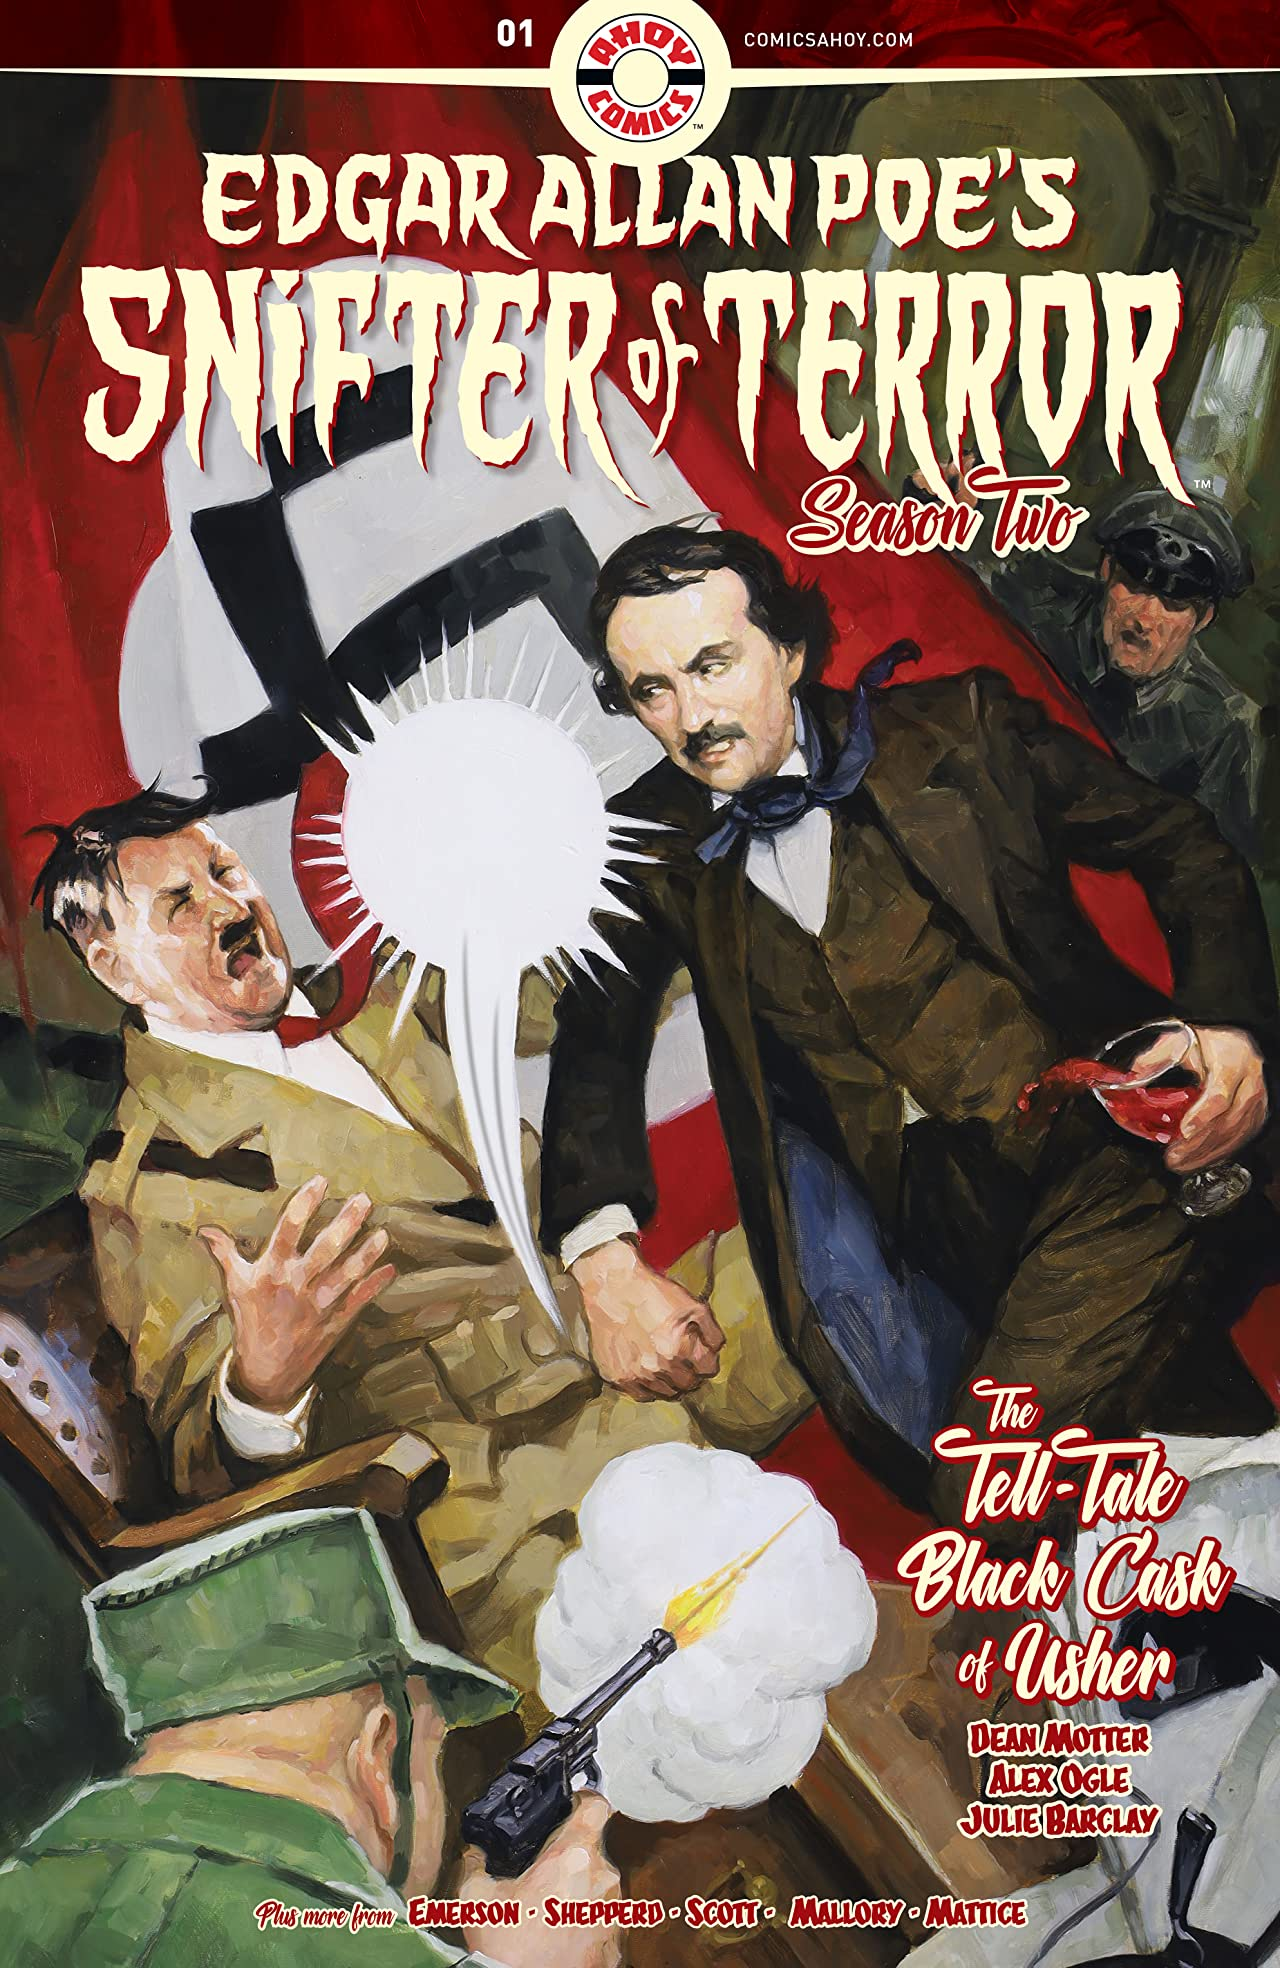 Edgar Allan Poe's Snifter of Terror Vol. 2 #1